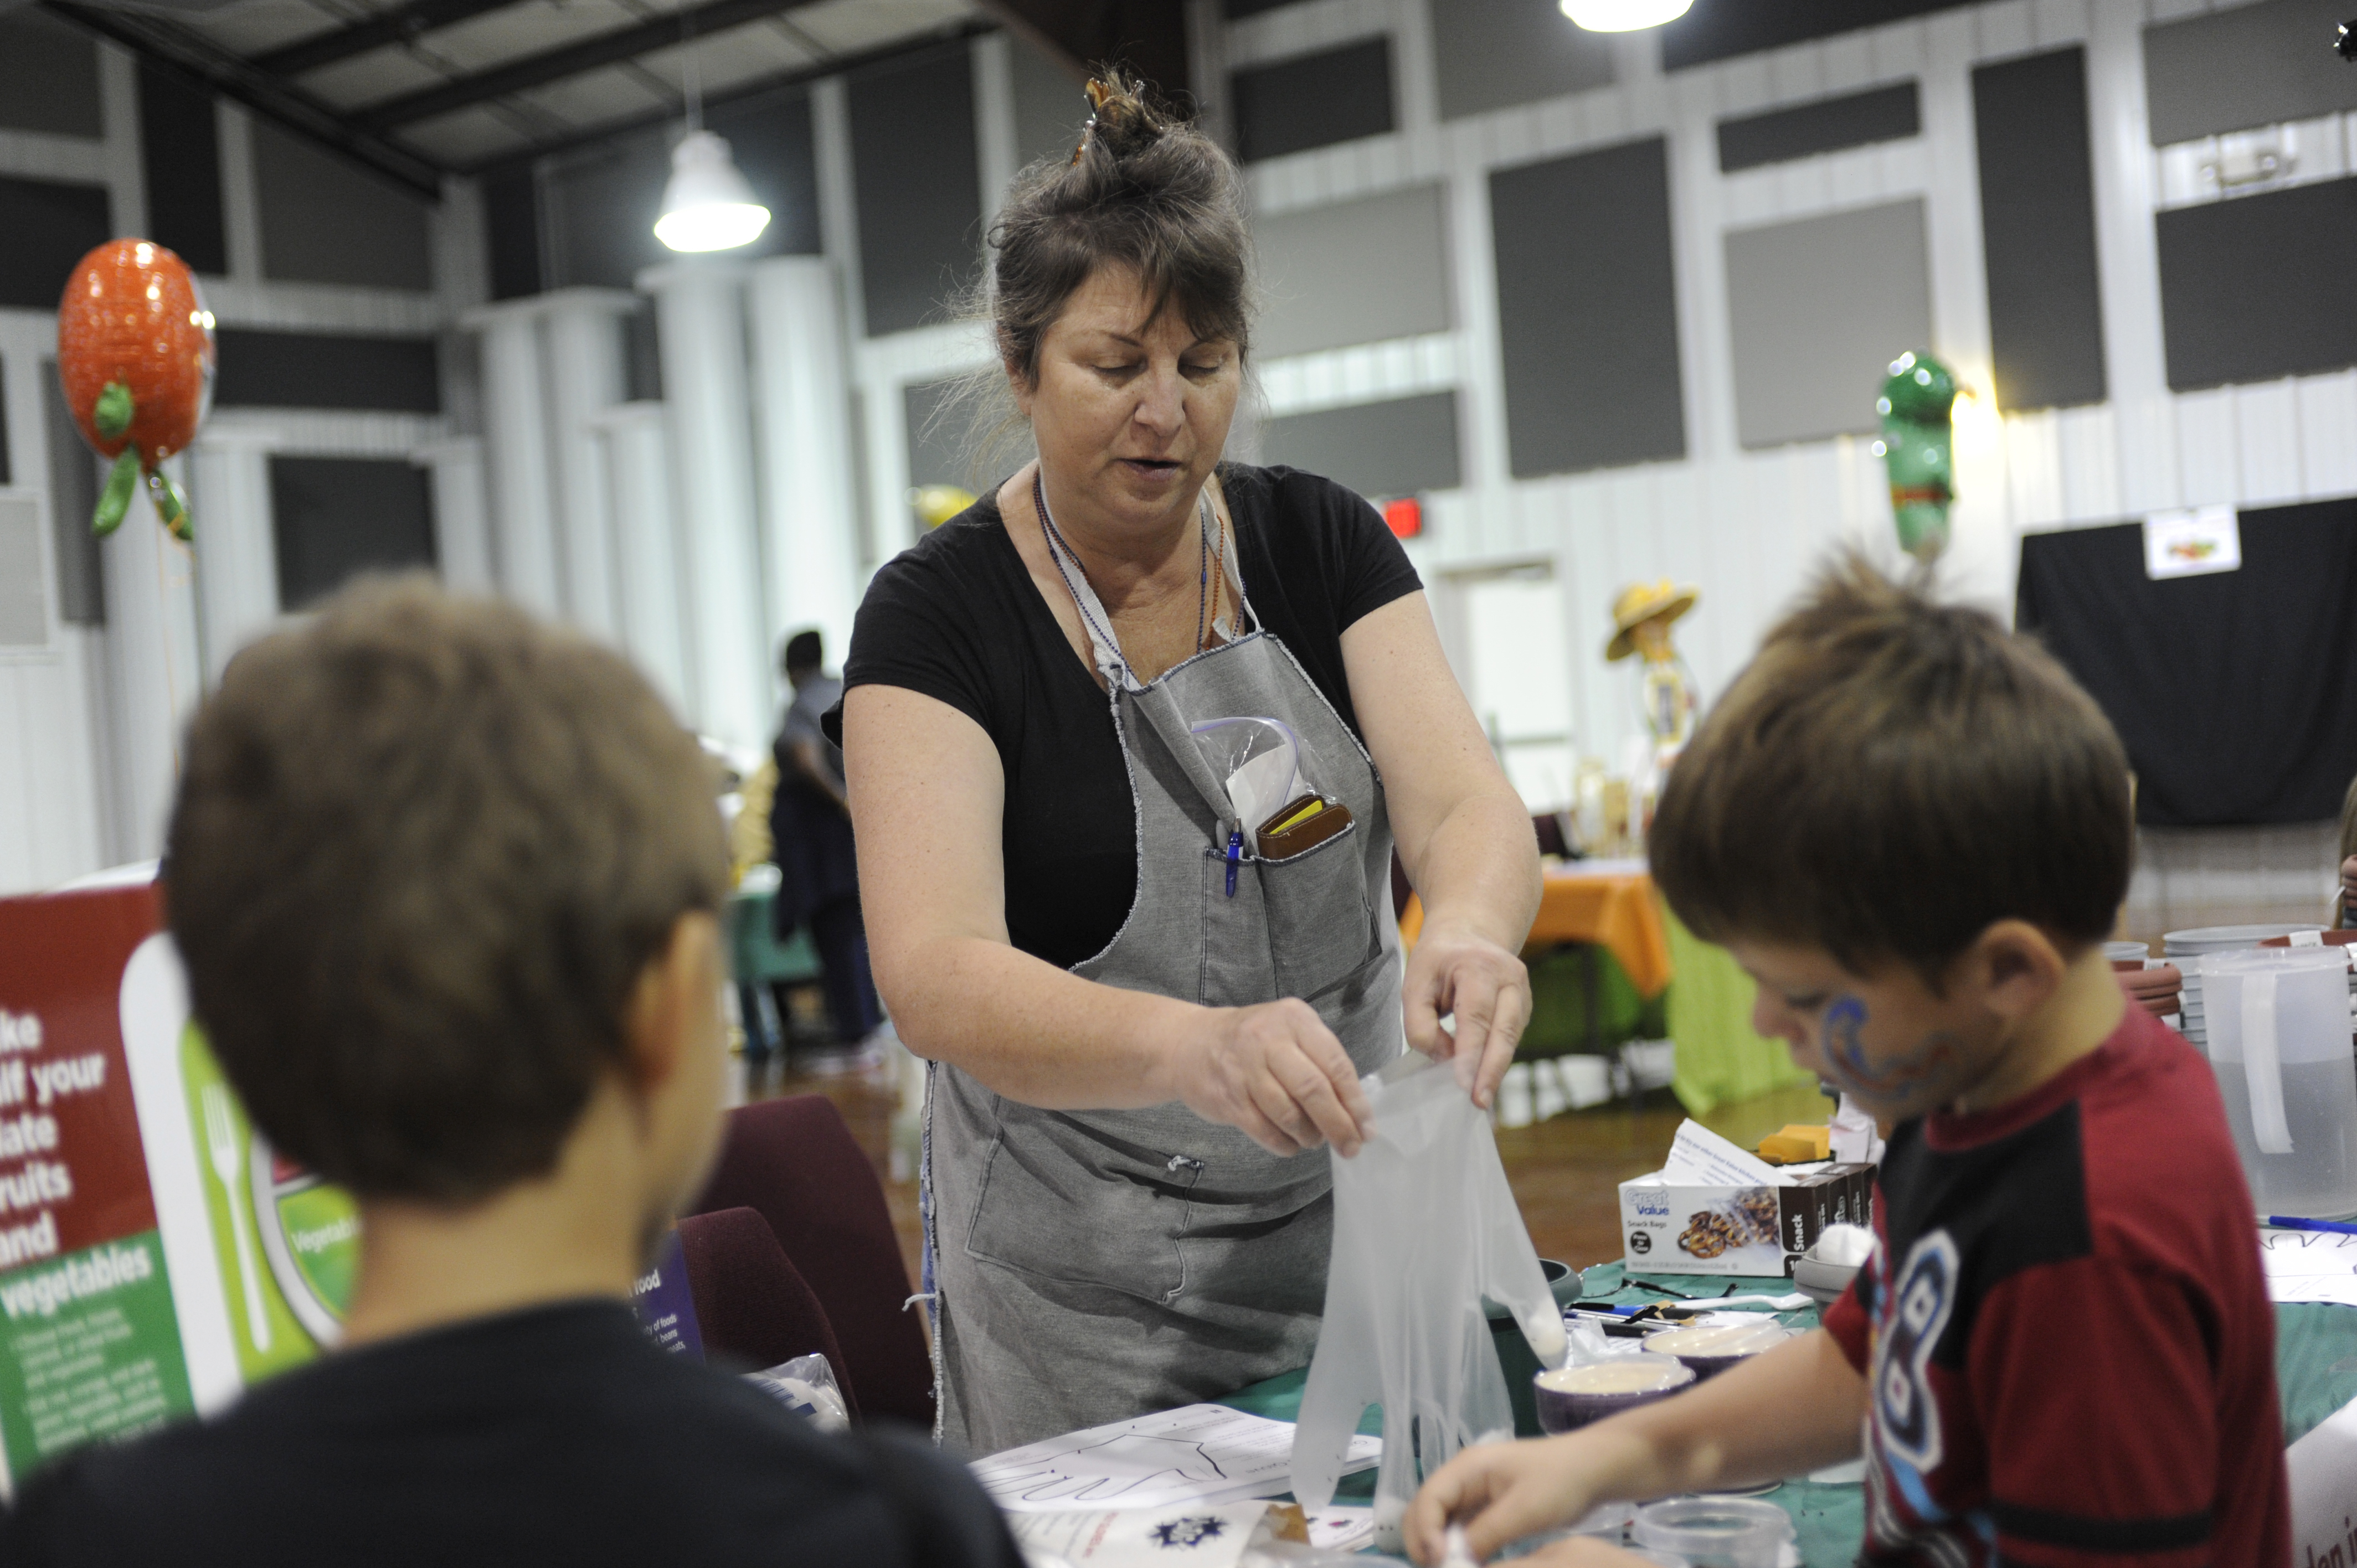 Family Fall Fest highlights solutions to rural health problems